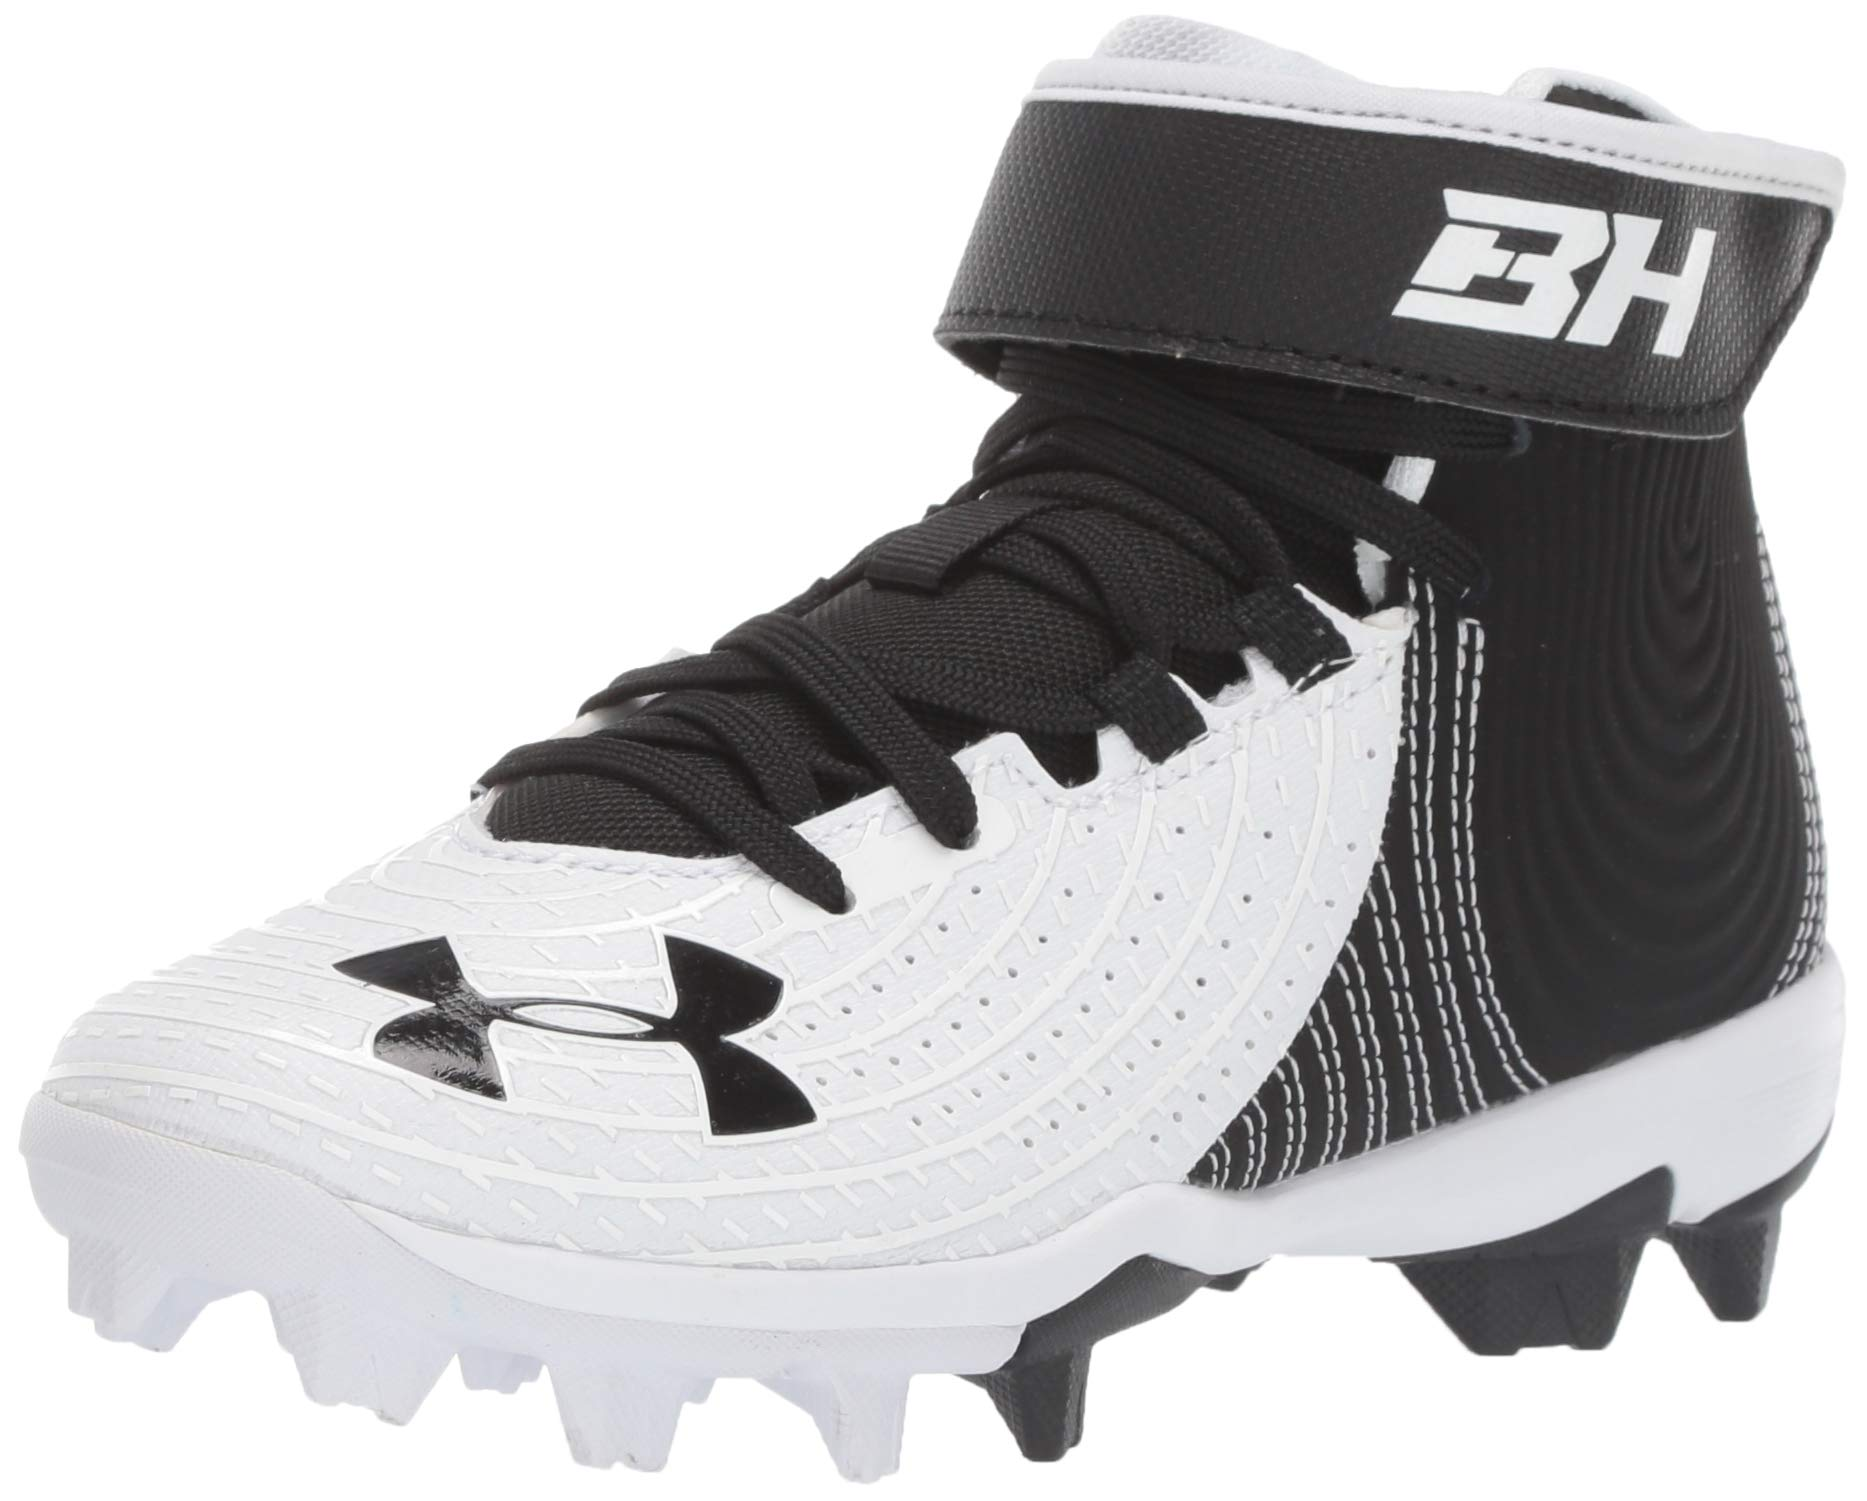 Under Armour Boys' Harper 4 Mid RM Jr. Baseball Shoe, Black (001)/White, 1.5 by Under Armour